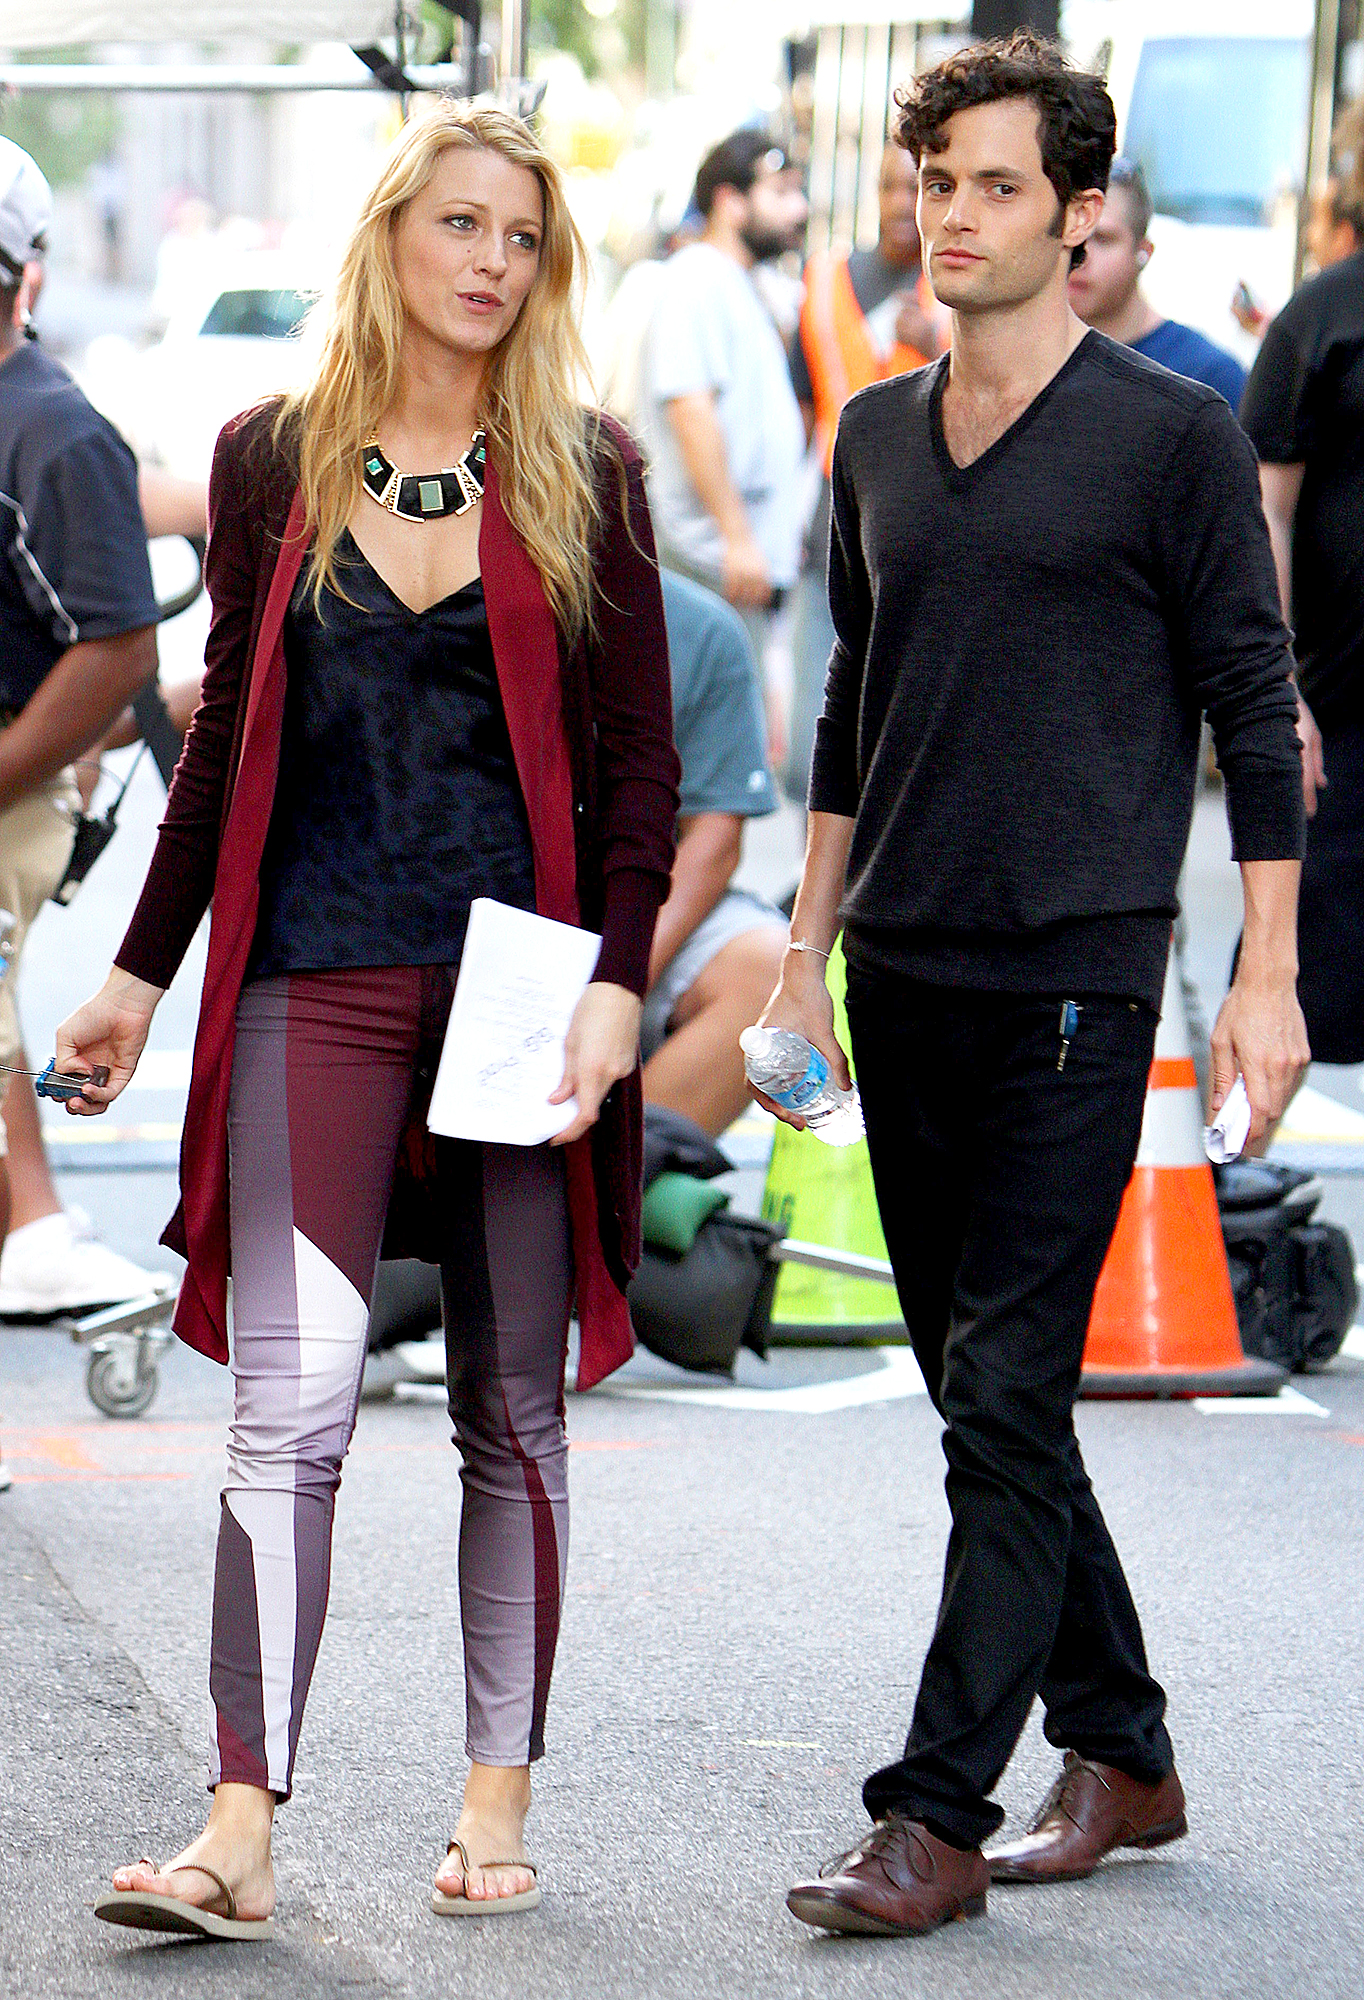 Penn-Badgley-Blake-Lively-Gossip-Girl-set